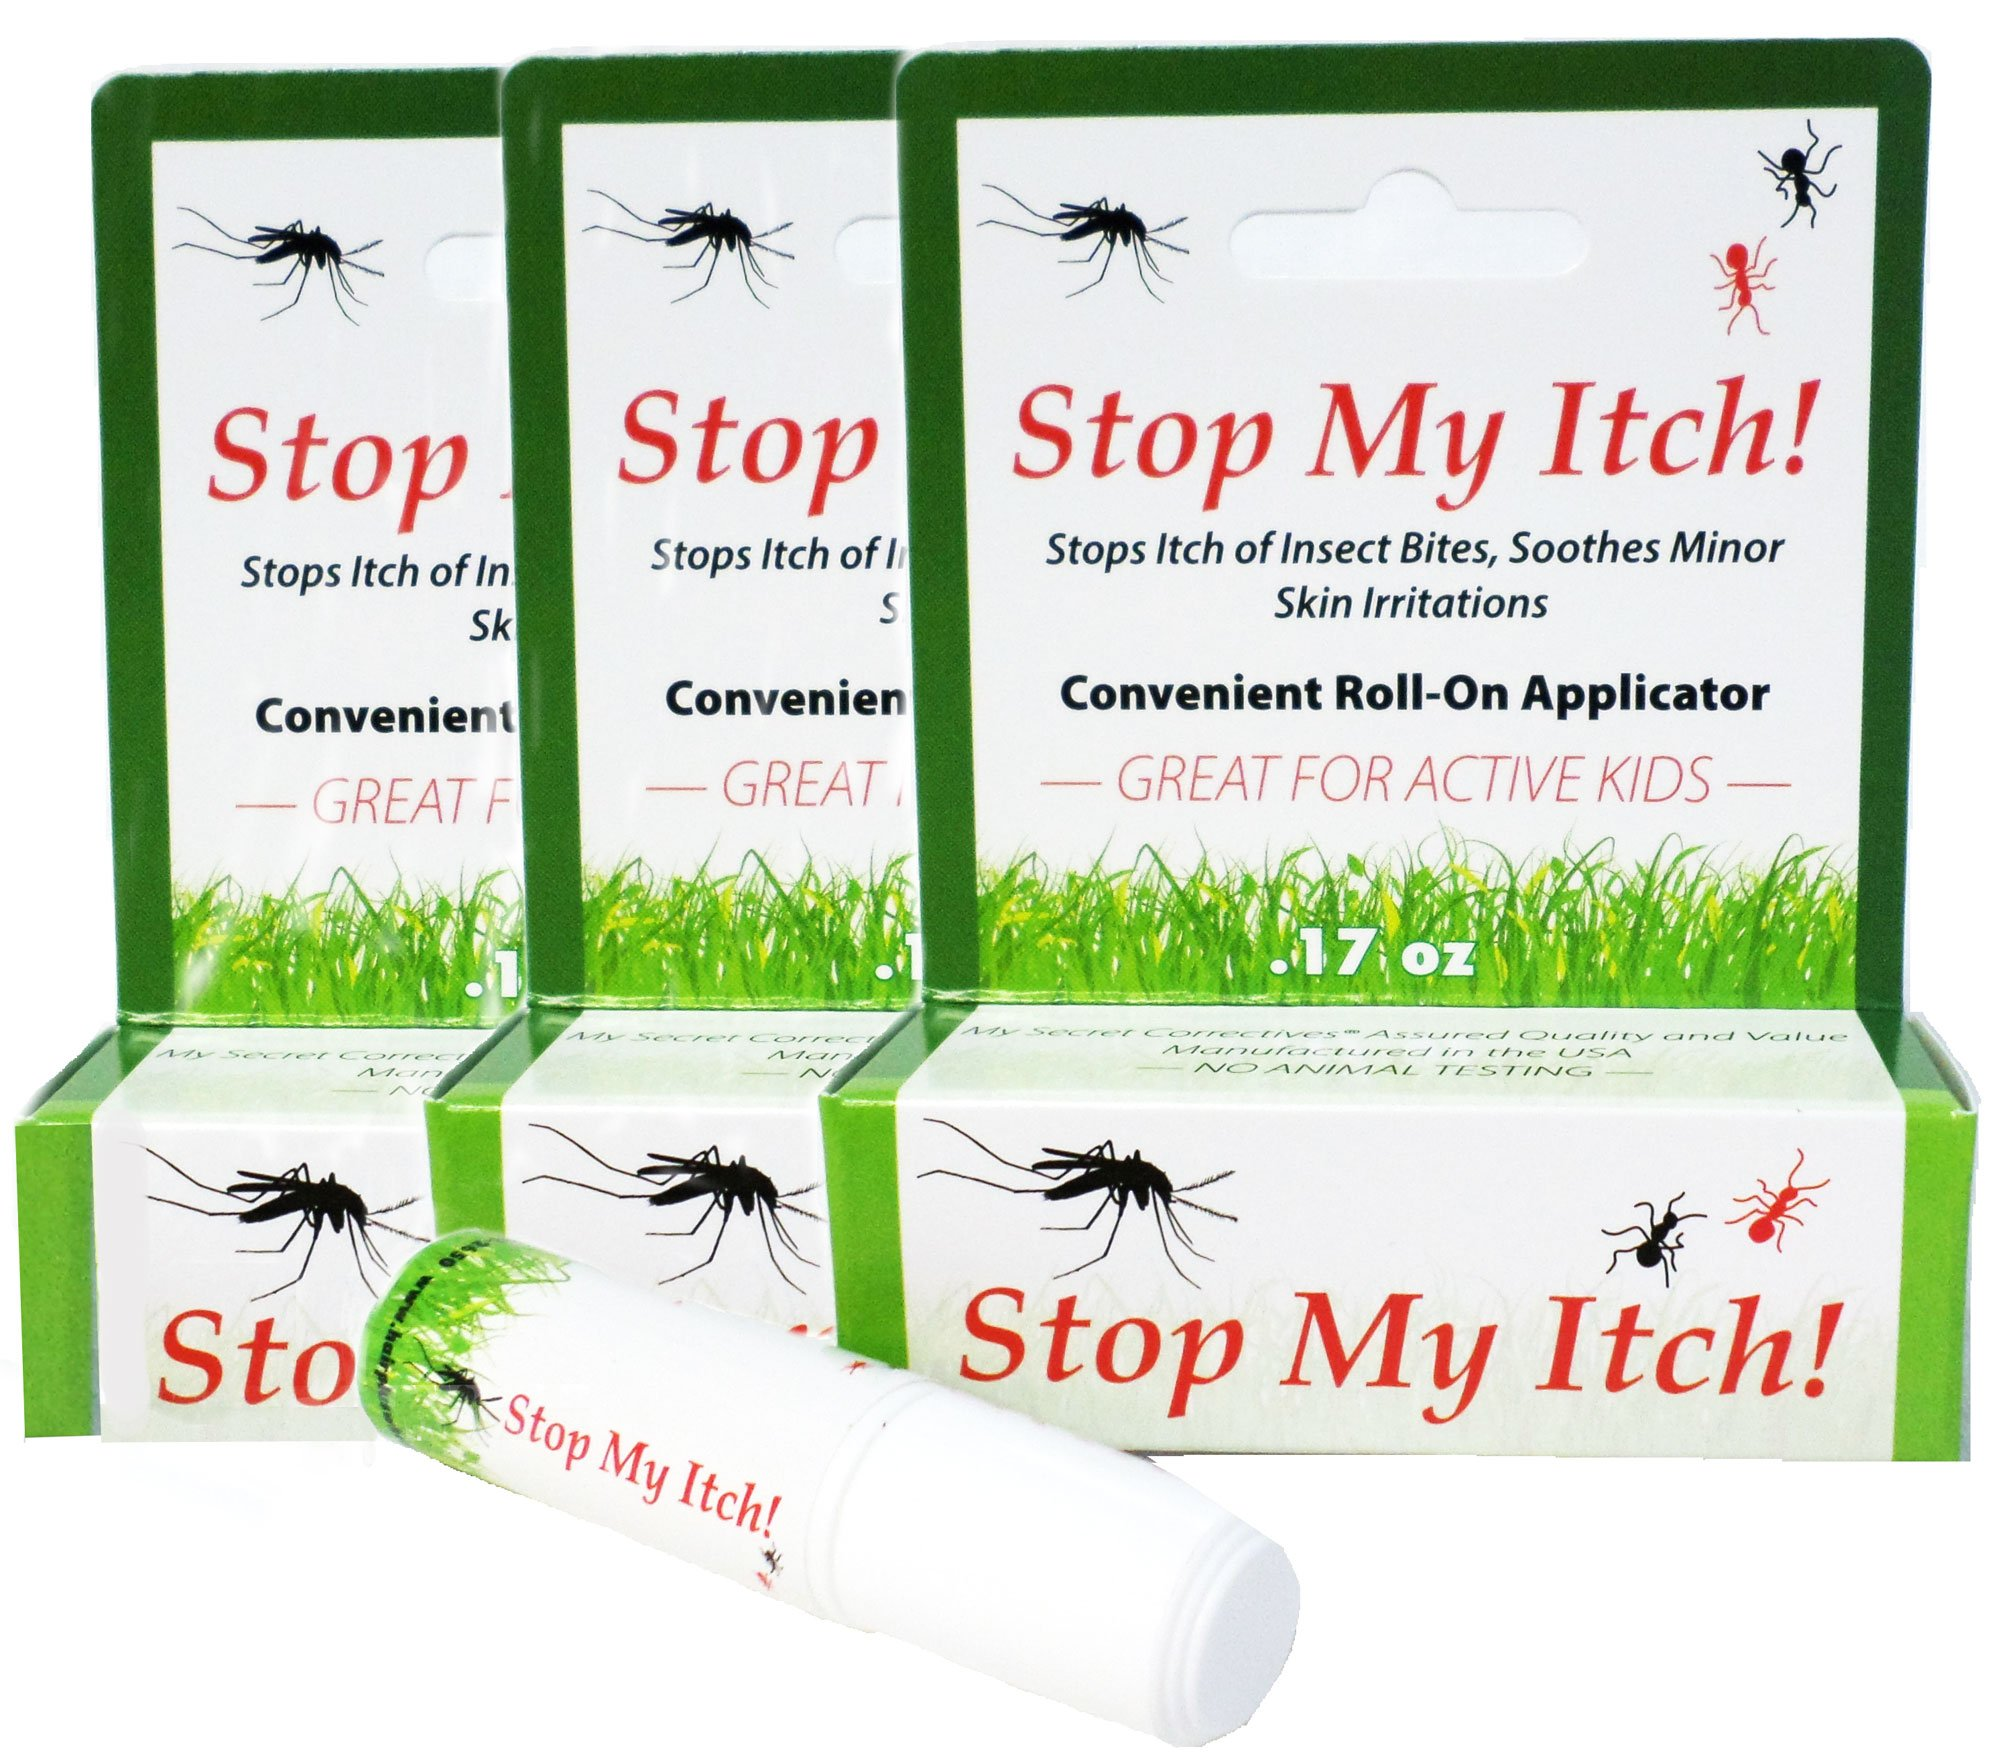 Stop My Itch! Three Pack/Instantly Stops The Itch of Mosquito Bites (Also Gnats, Ticks, Flies, May Flies and Many More); Soothes Scrapes and Minor Skin Irritation. Quick and Effective/0.17